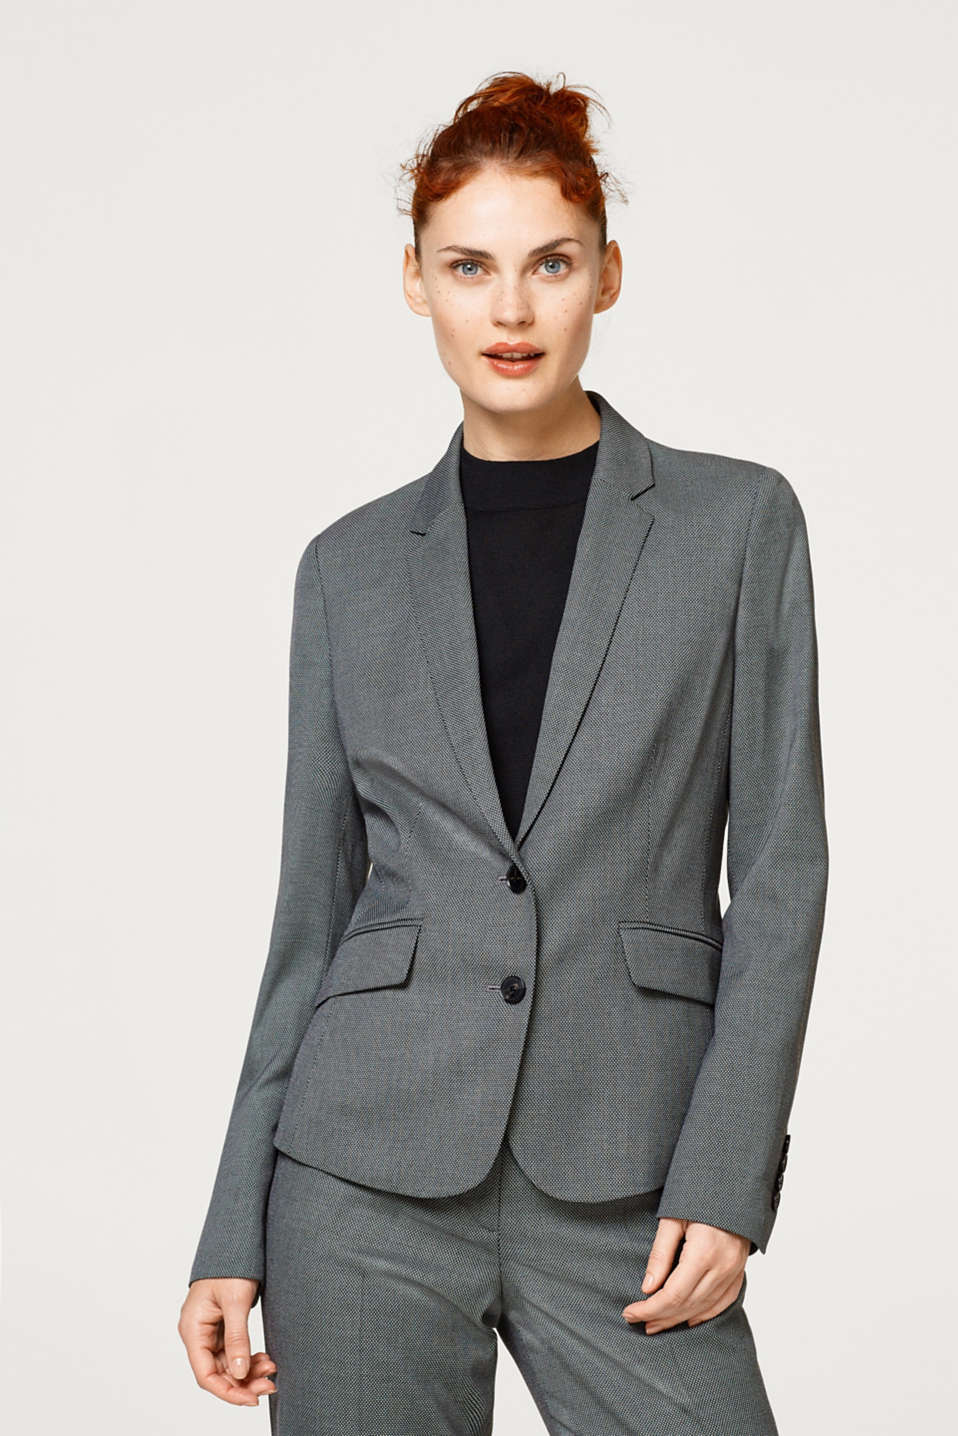 Esprit - PEPPER AND SALT Mix + Match Blazer